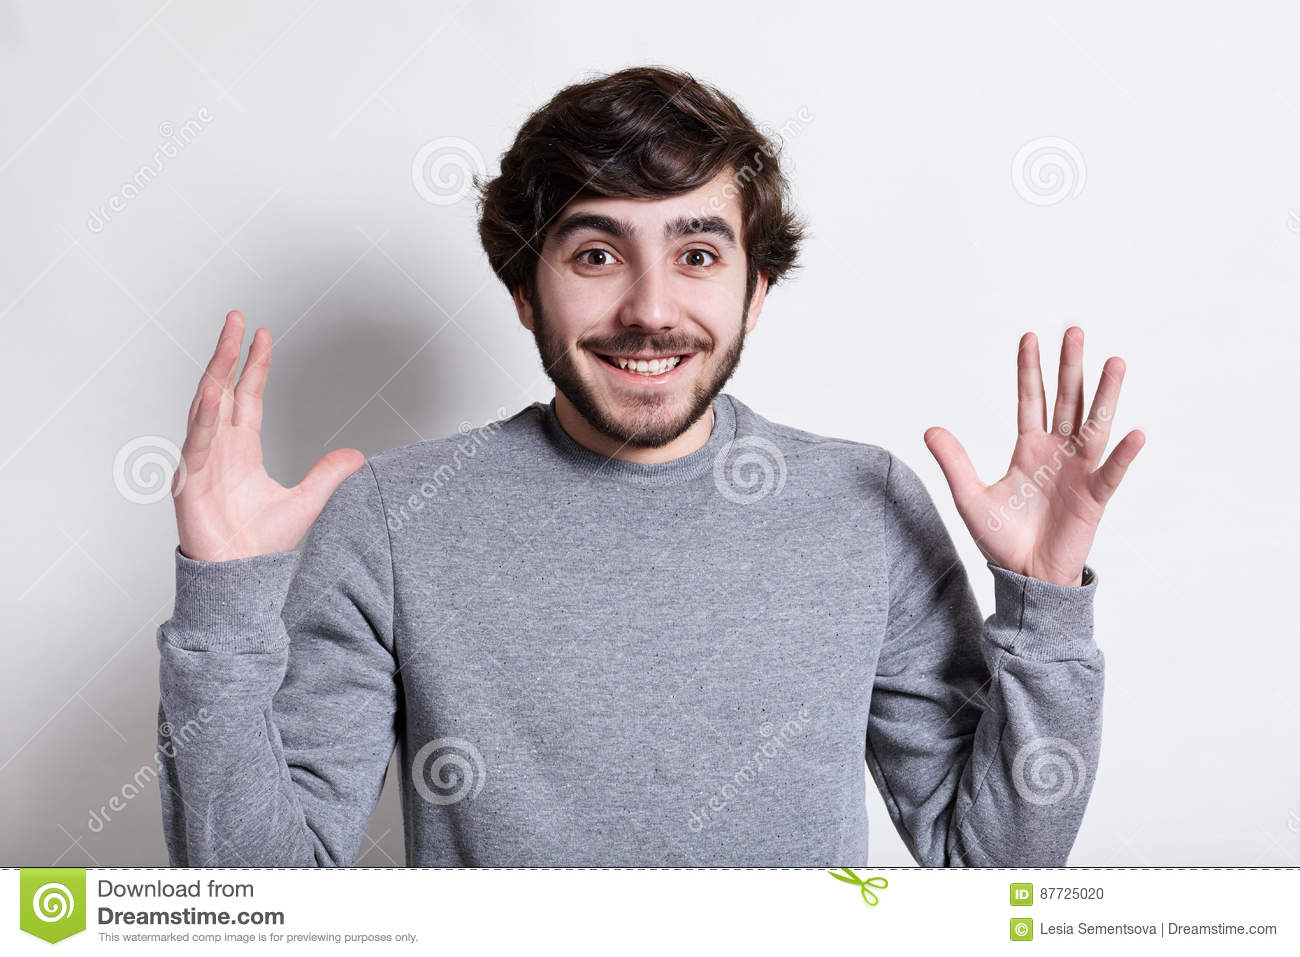 Human face expressions and emotions. Portrait of young hipster with beard and modern hairstyle smiling at camera with arms outstre